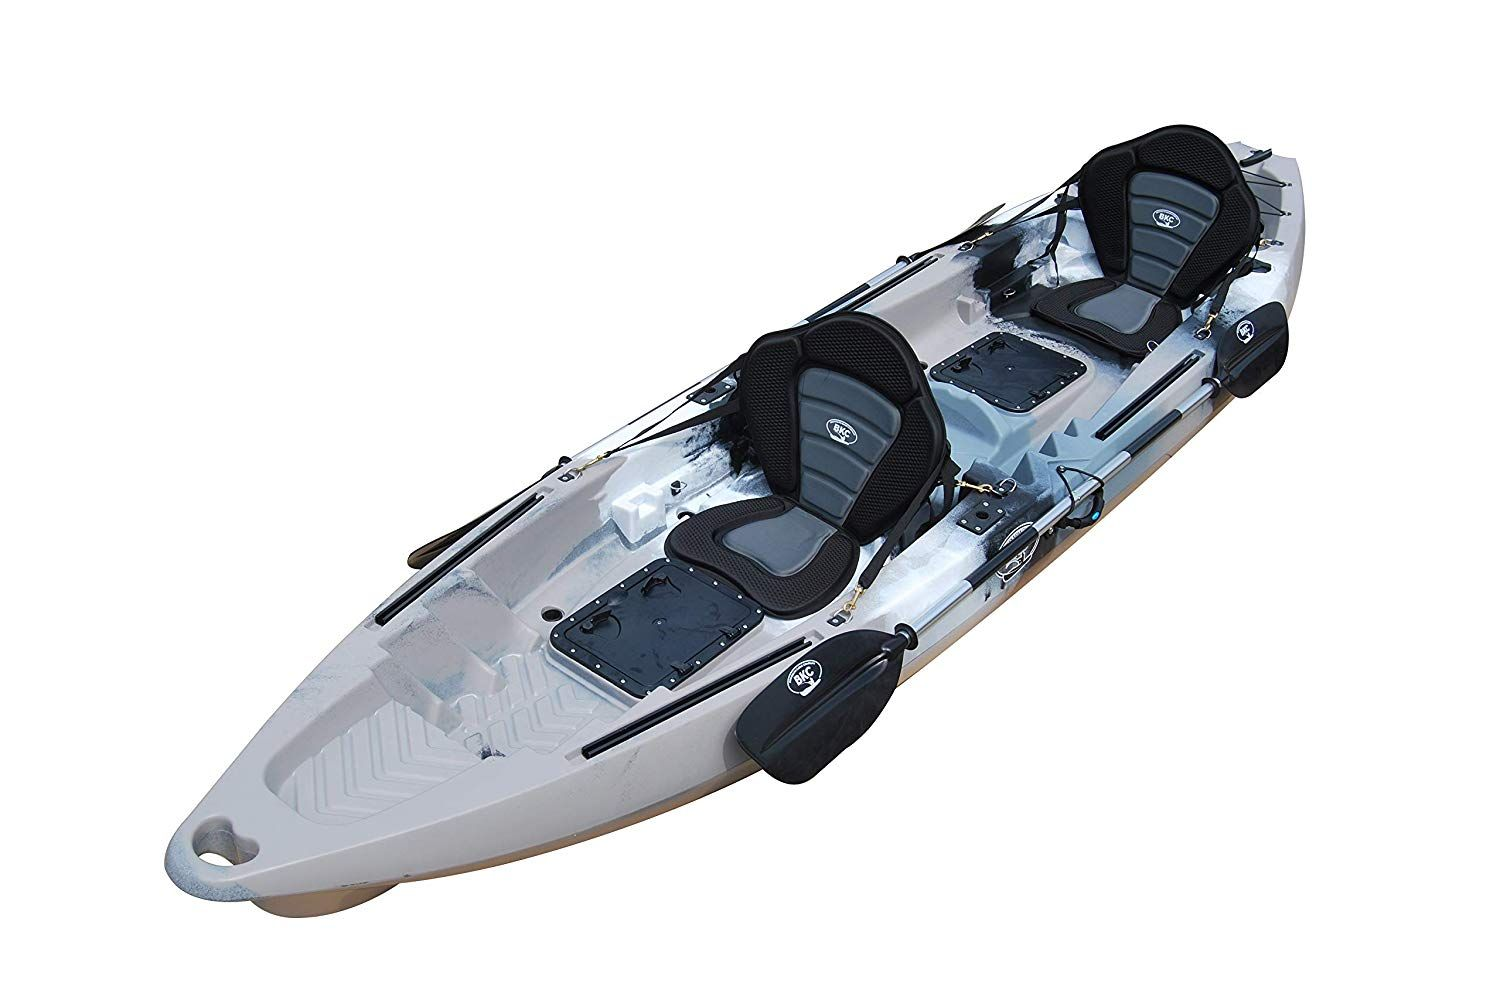 Fishing Kayak Fishingkayakreviews Fishingkayakwithpedals